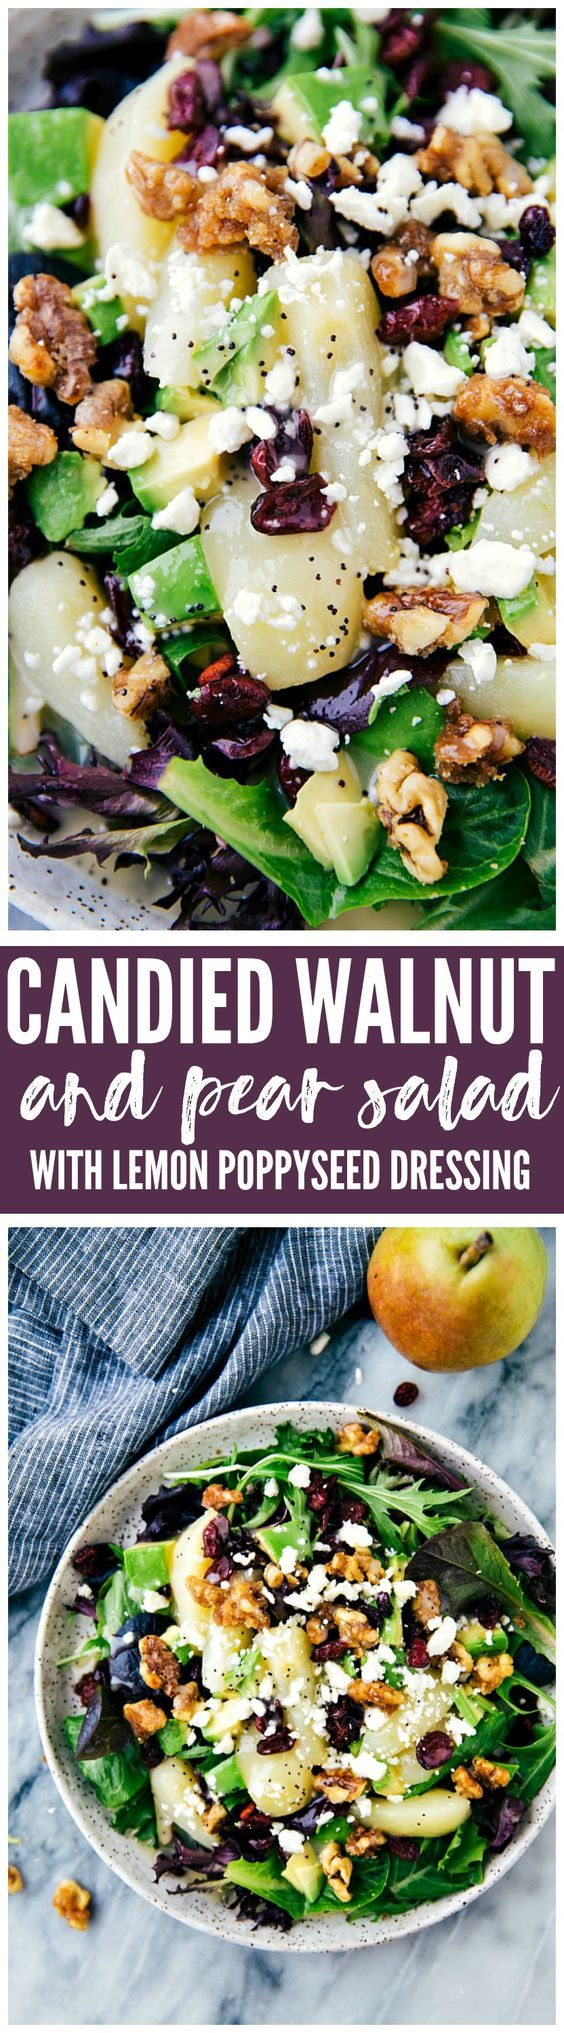 Candied Walnut and Pear Salad with Lemon Poppyseed Dressing Recipe via The Recipe Critic - A delicious and simple to salad with fresh sliced pears, avocado, cranberries and feta cheese. Drizzled with a lemon poppyseed dressing this salad is mouthwatering and full of flavor!